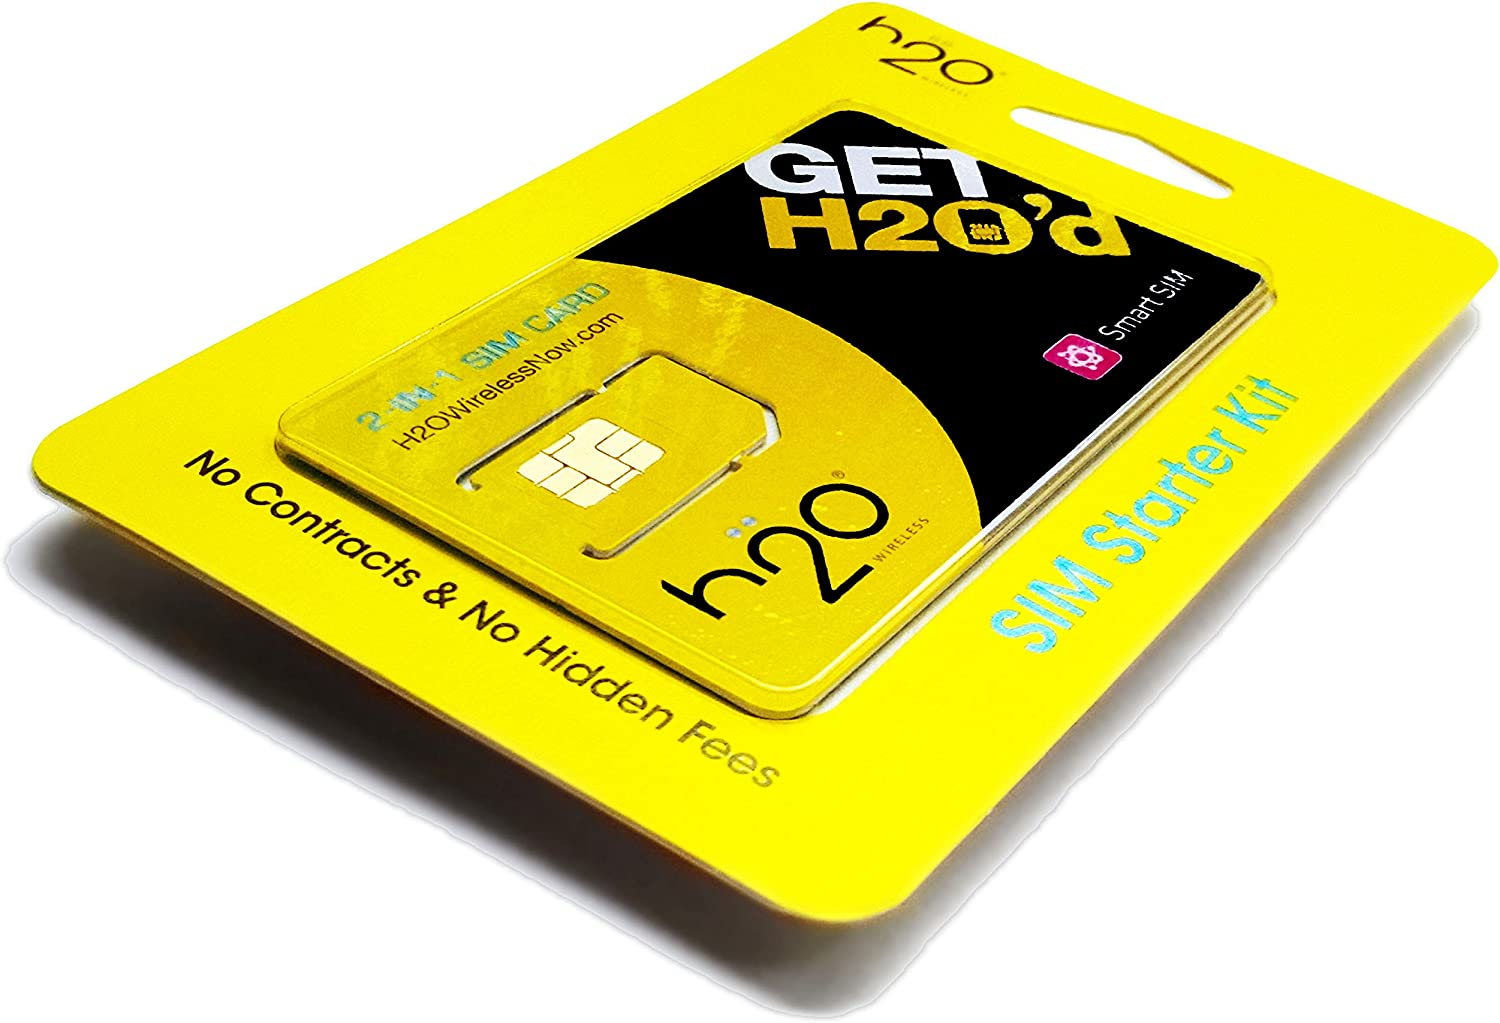 Wireless Micro H2O H20/mini tarjeta SIM for any libre GSM phone w / $30 Airtime by HJ Wireless: Amazon.es: Hogar